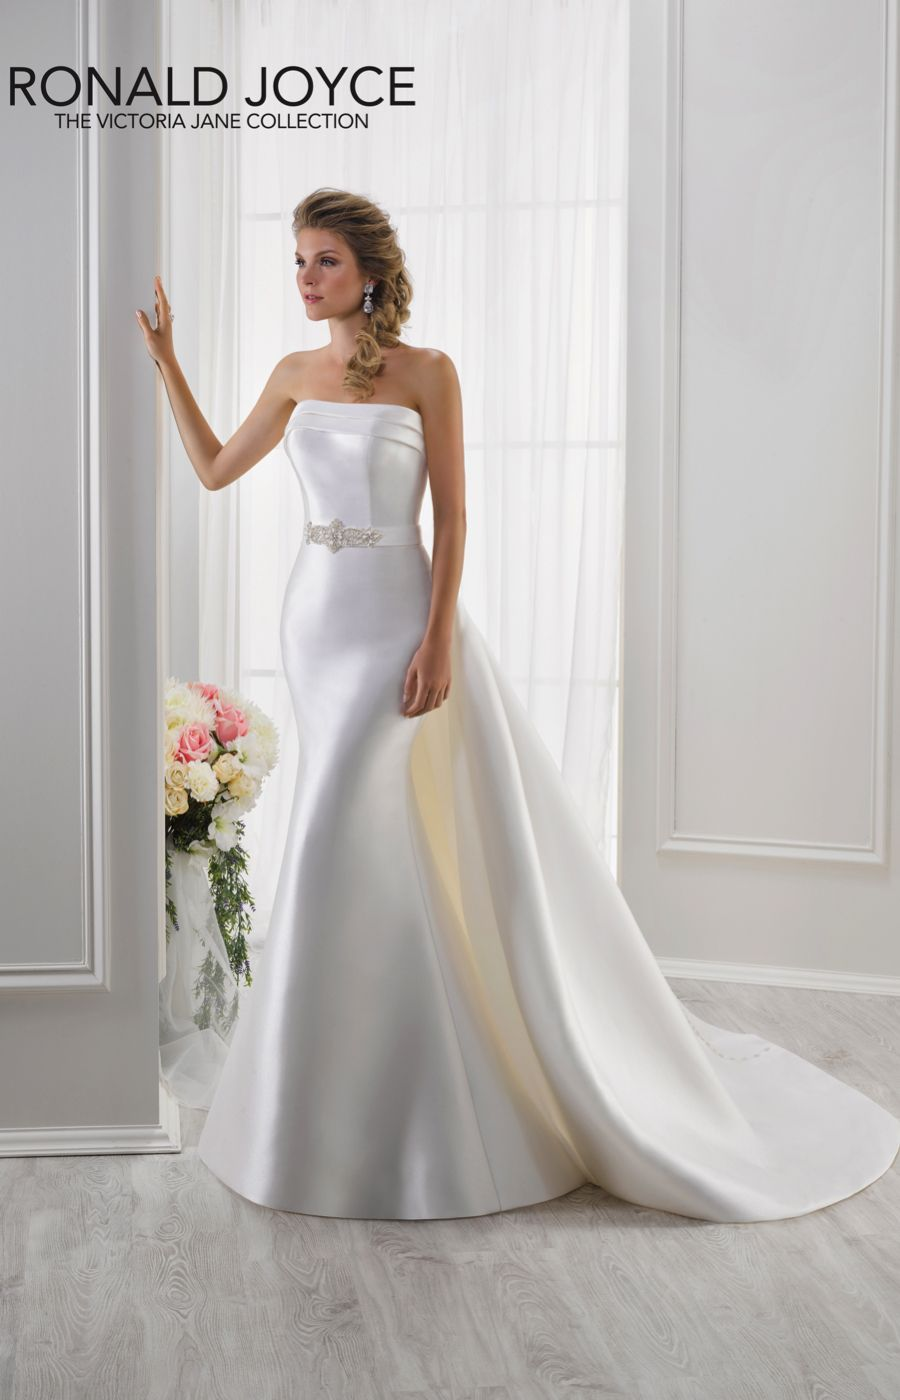 Lisa Style 18111 Victoria Jane By Ronald Joyce A Strapless Mikado Gown With Beaded Detail And Detachable Train Wedding Dress